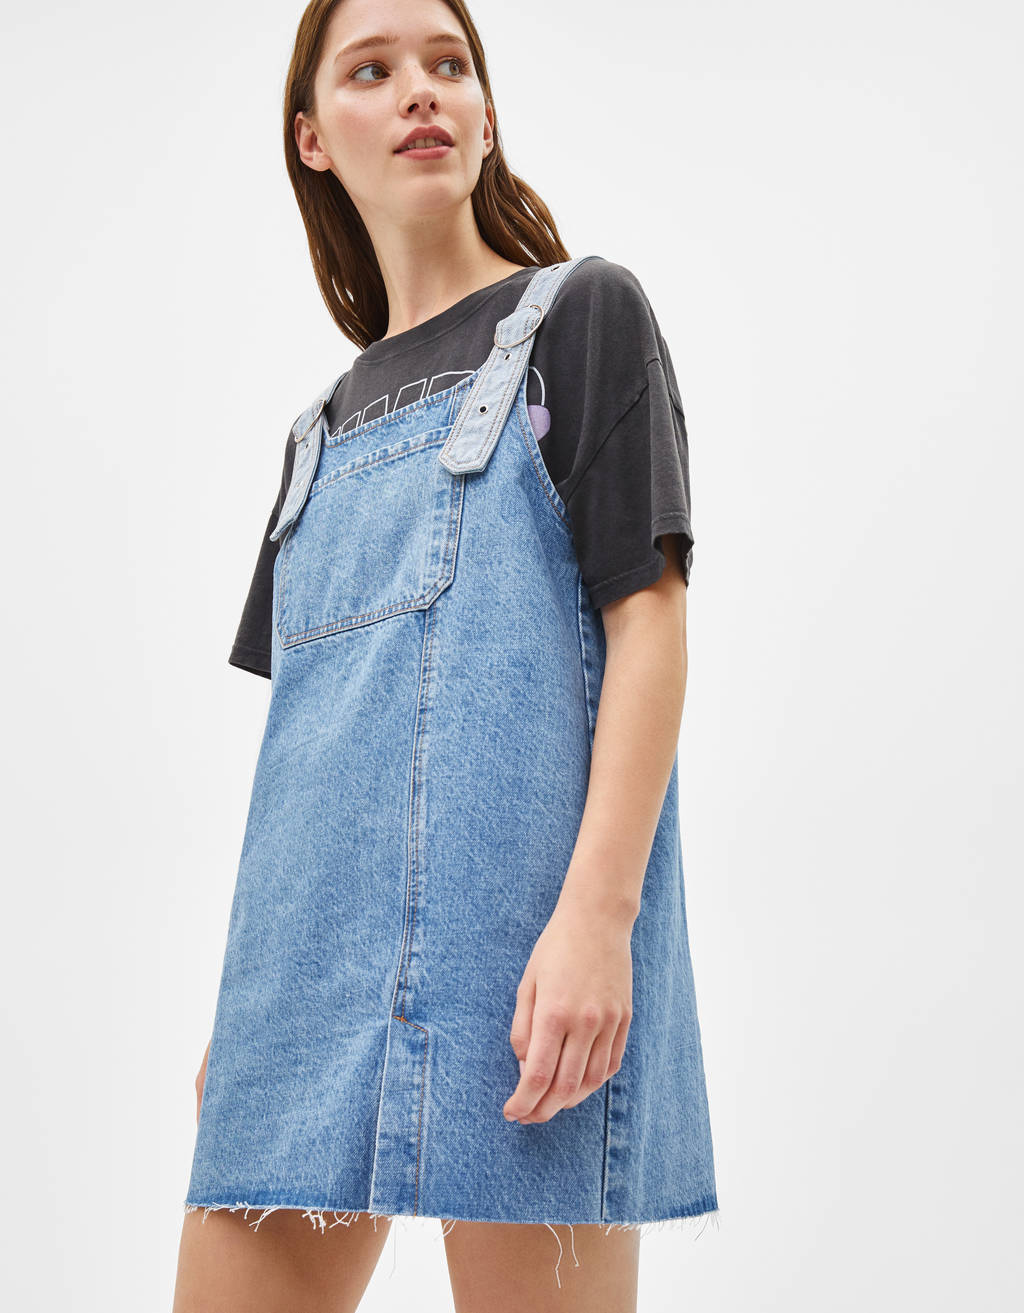 Denim pinafore dress with buckles